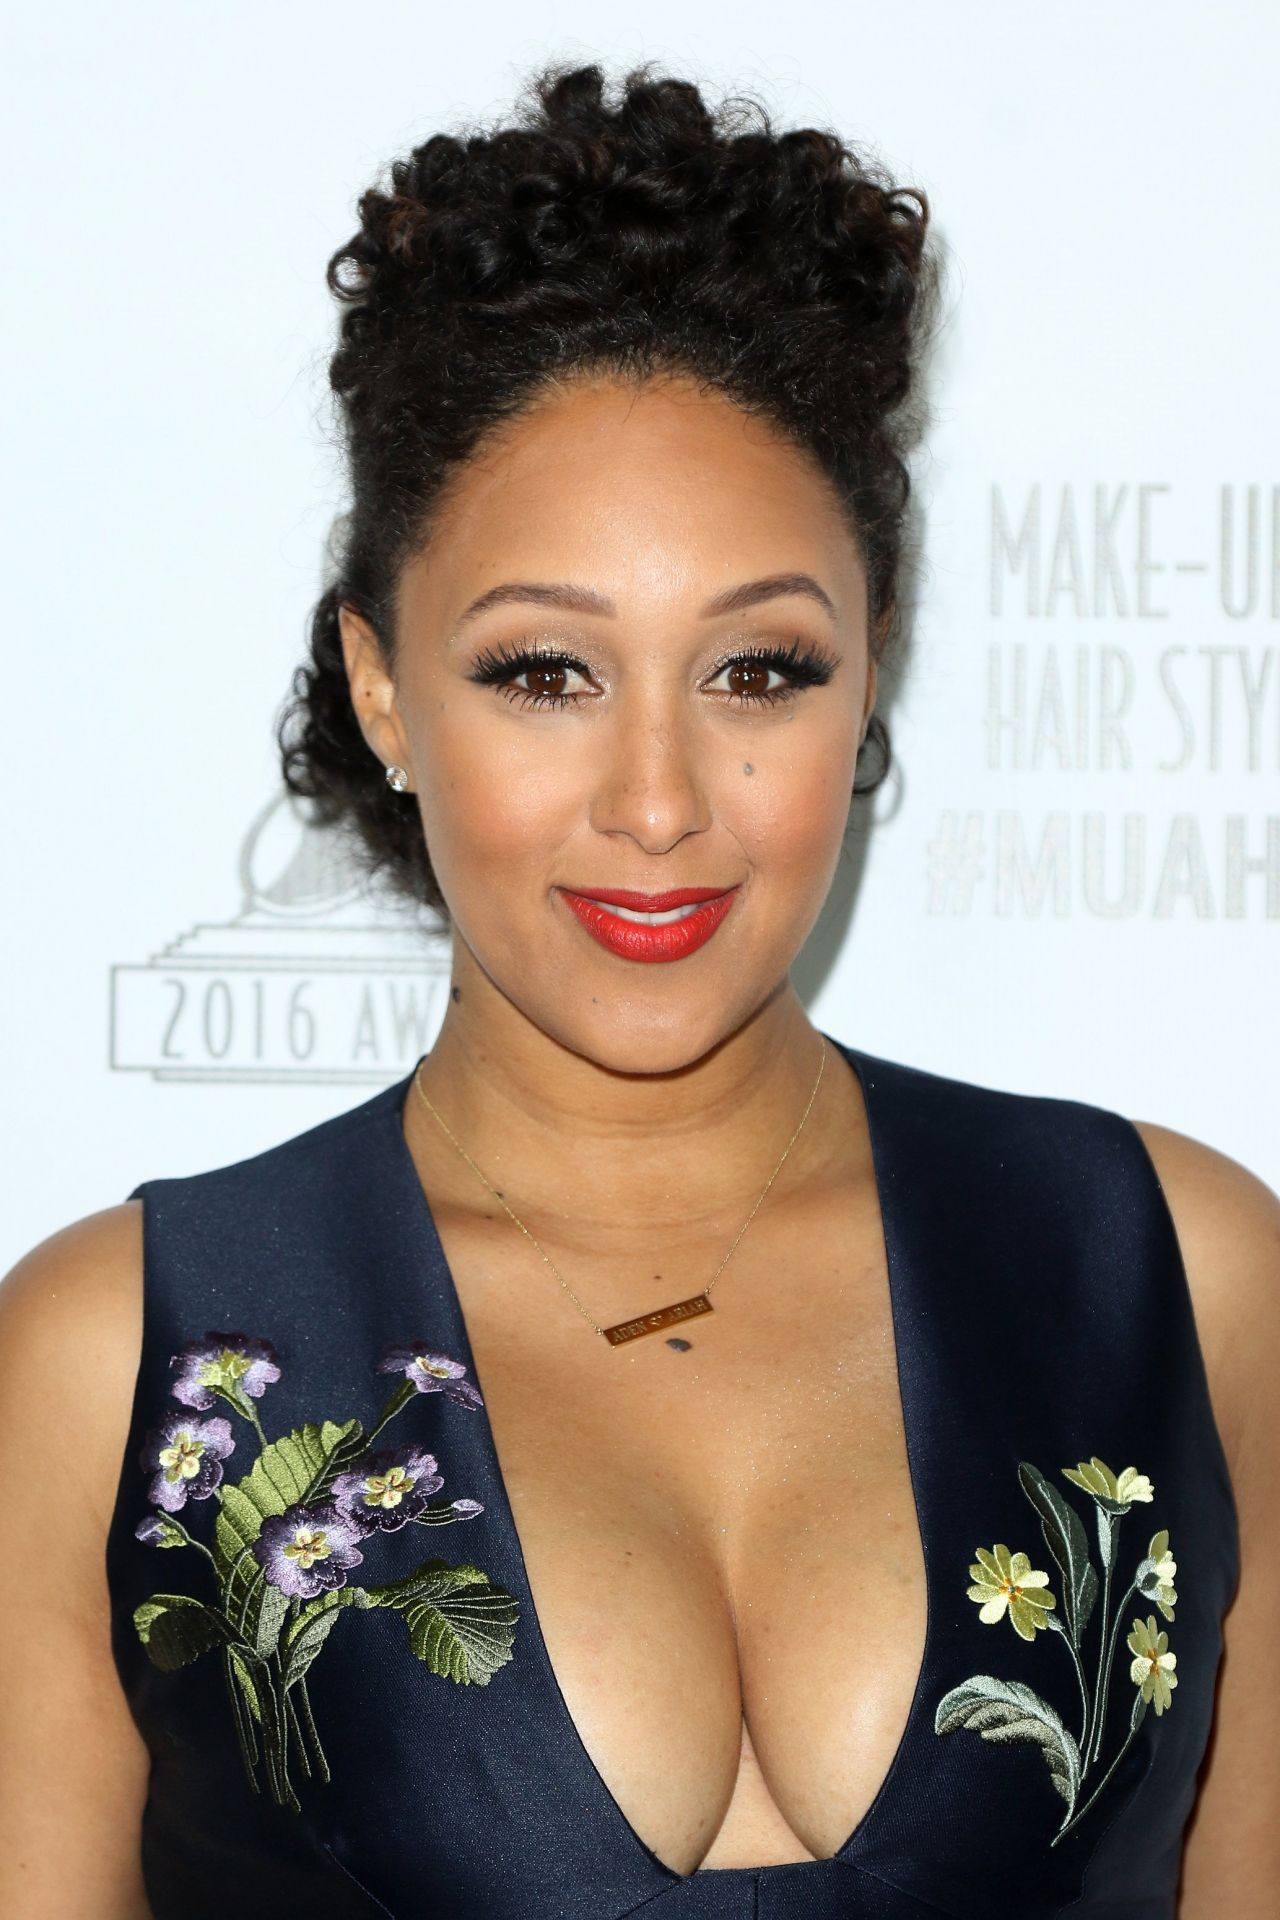 Jackée Harry Nude Classy tia mowry the game - norton safe search | television: cultural